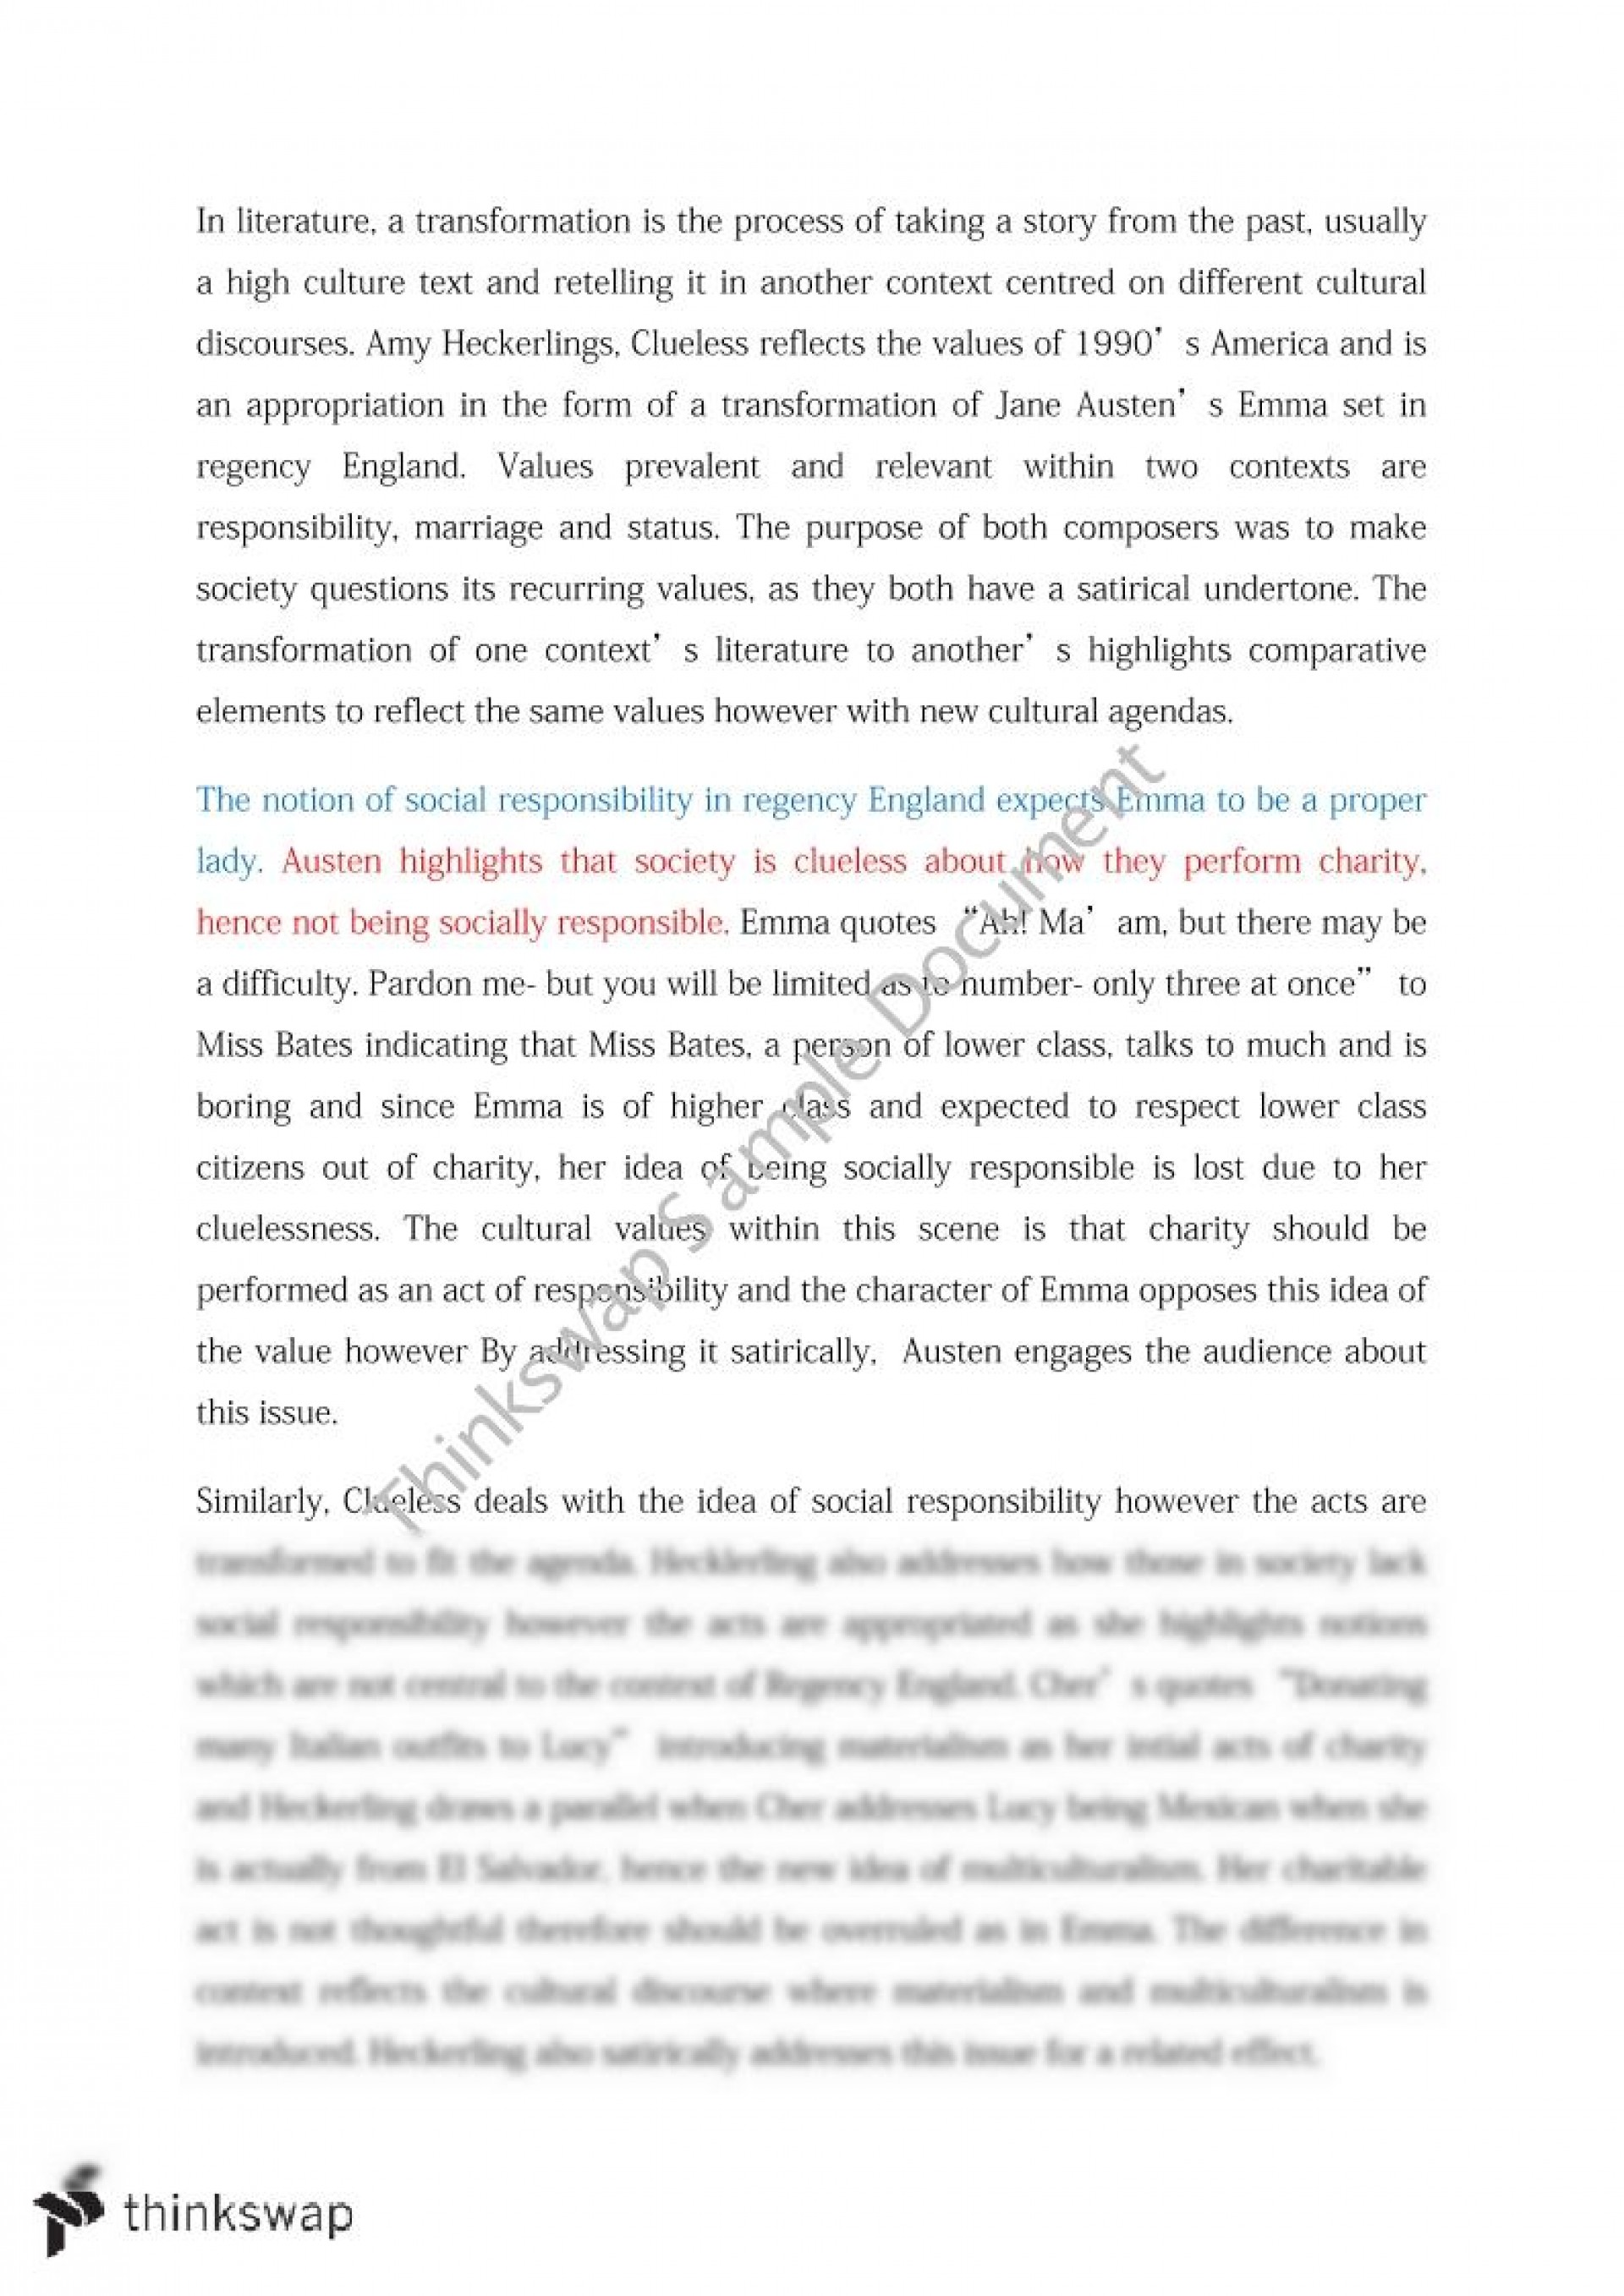 007 Comparative Essays Essay Example 20085 Emma V Clueless Fadded11 Sensational Sample Of On Poems Vce The Crucible And Year Wonders 1920